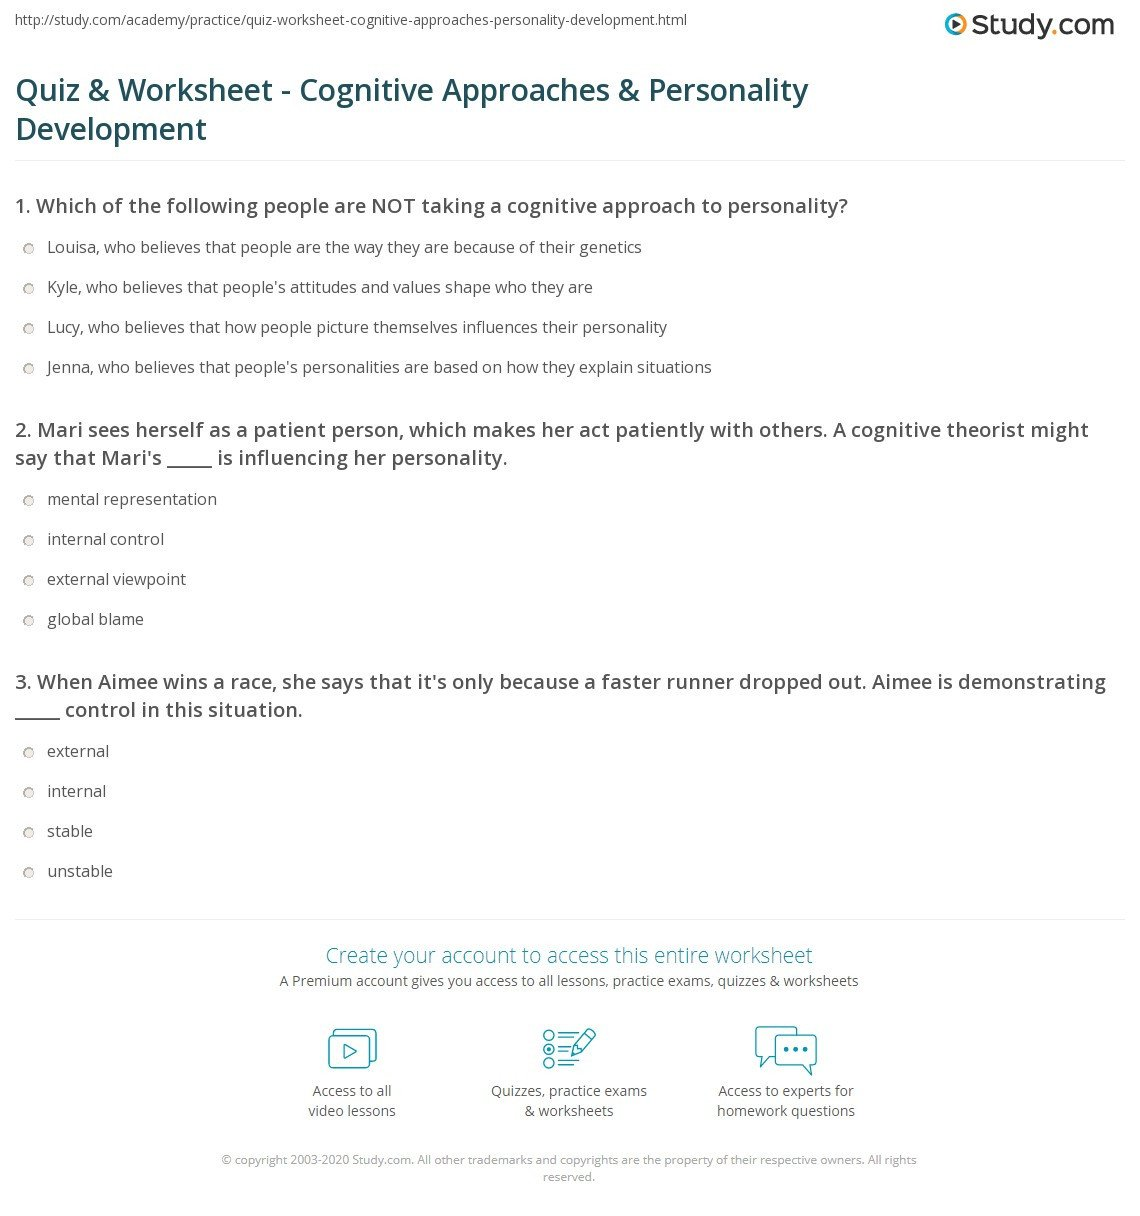 Personal Development Worksheet Quiz & Worksheet Cognitive Approaches & Personality